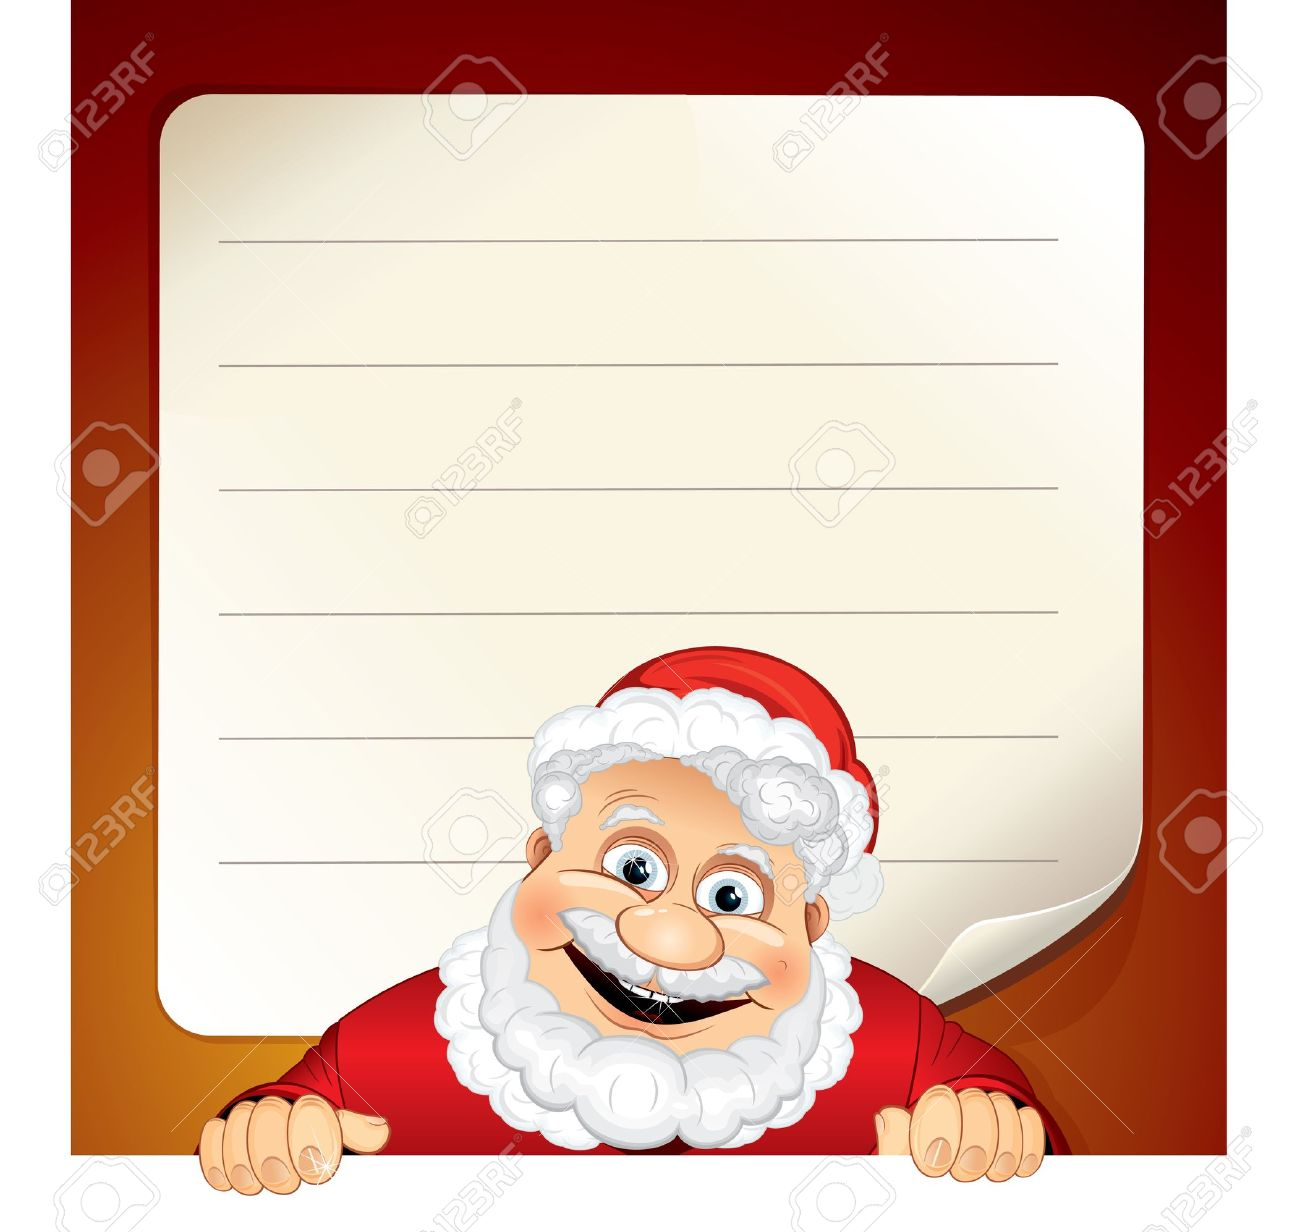 Doc8591100 Santa Wish Lists Free Printable Letter to Santa – Wish List Template